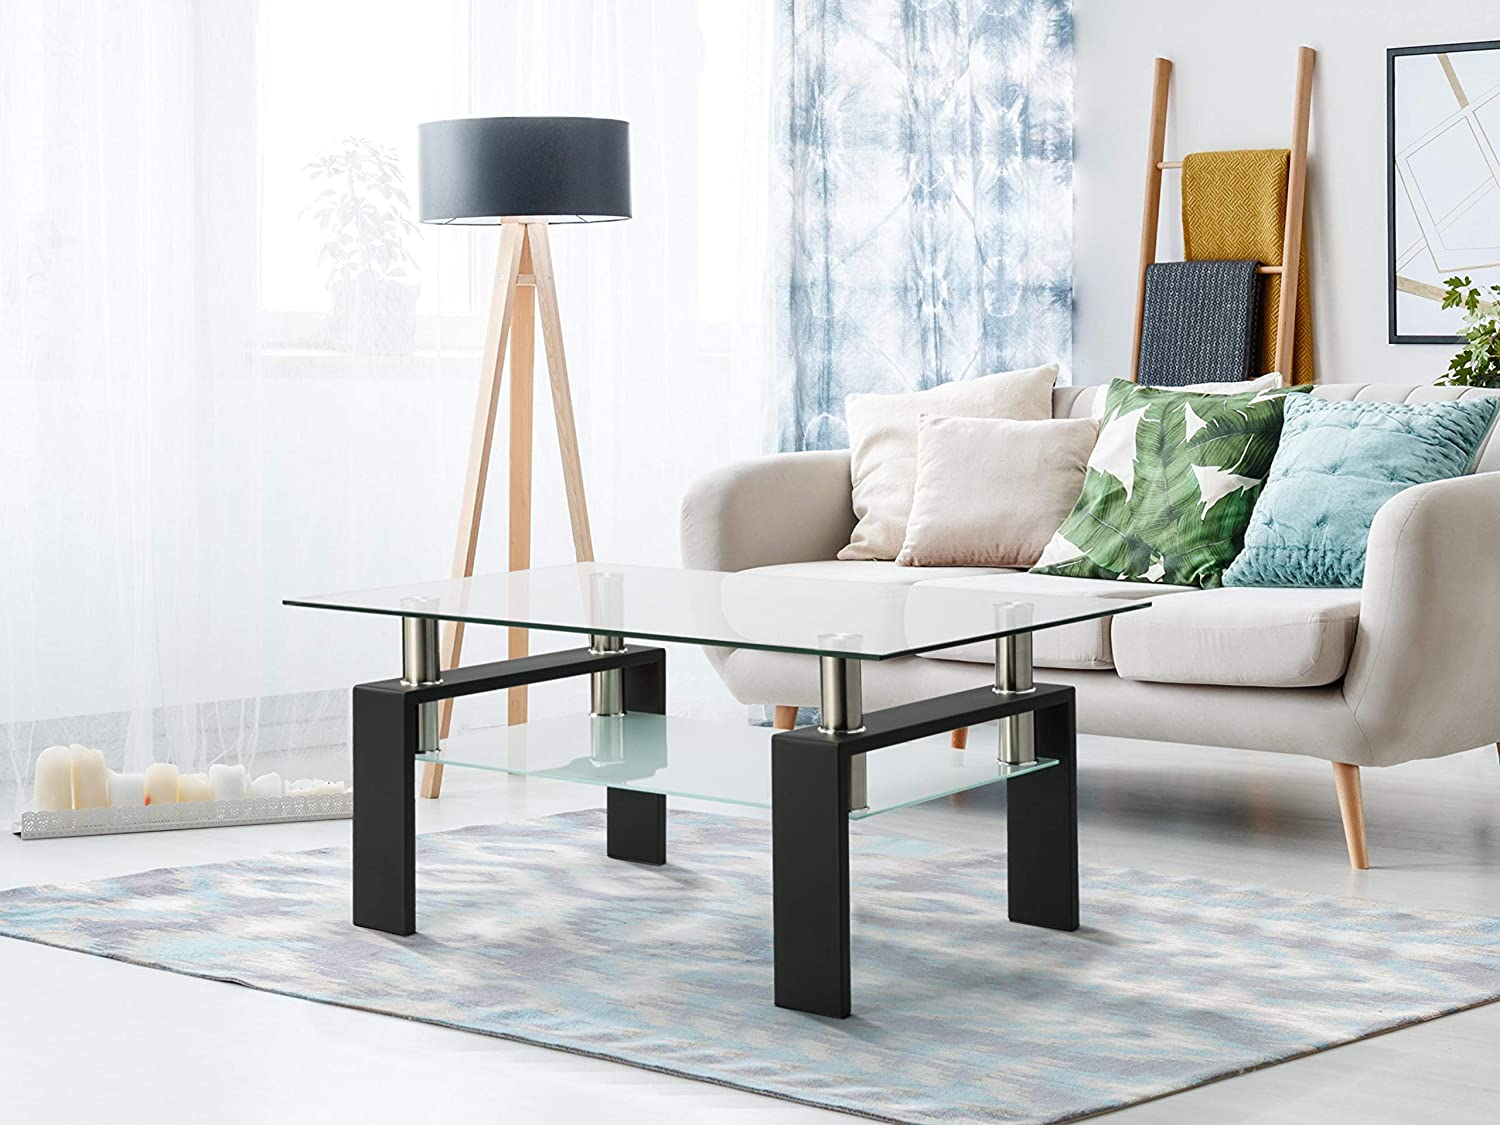 HOTYARD Rectangular Glass Coffee Table Shelf Storage with Don't miss the campaign Complete Free Shipping Lower